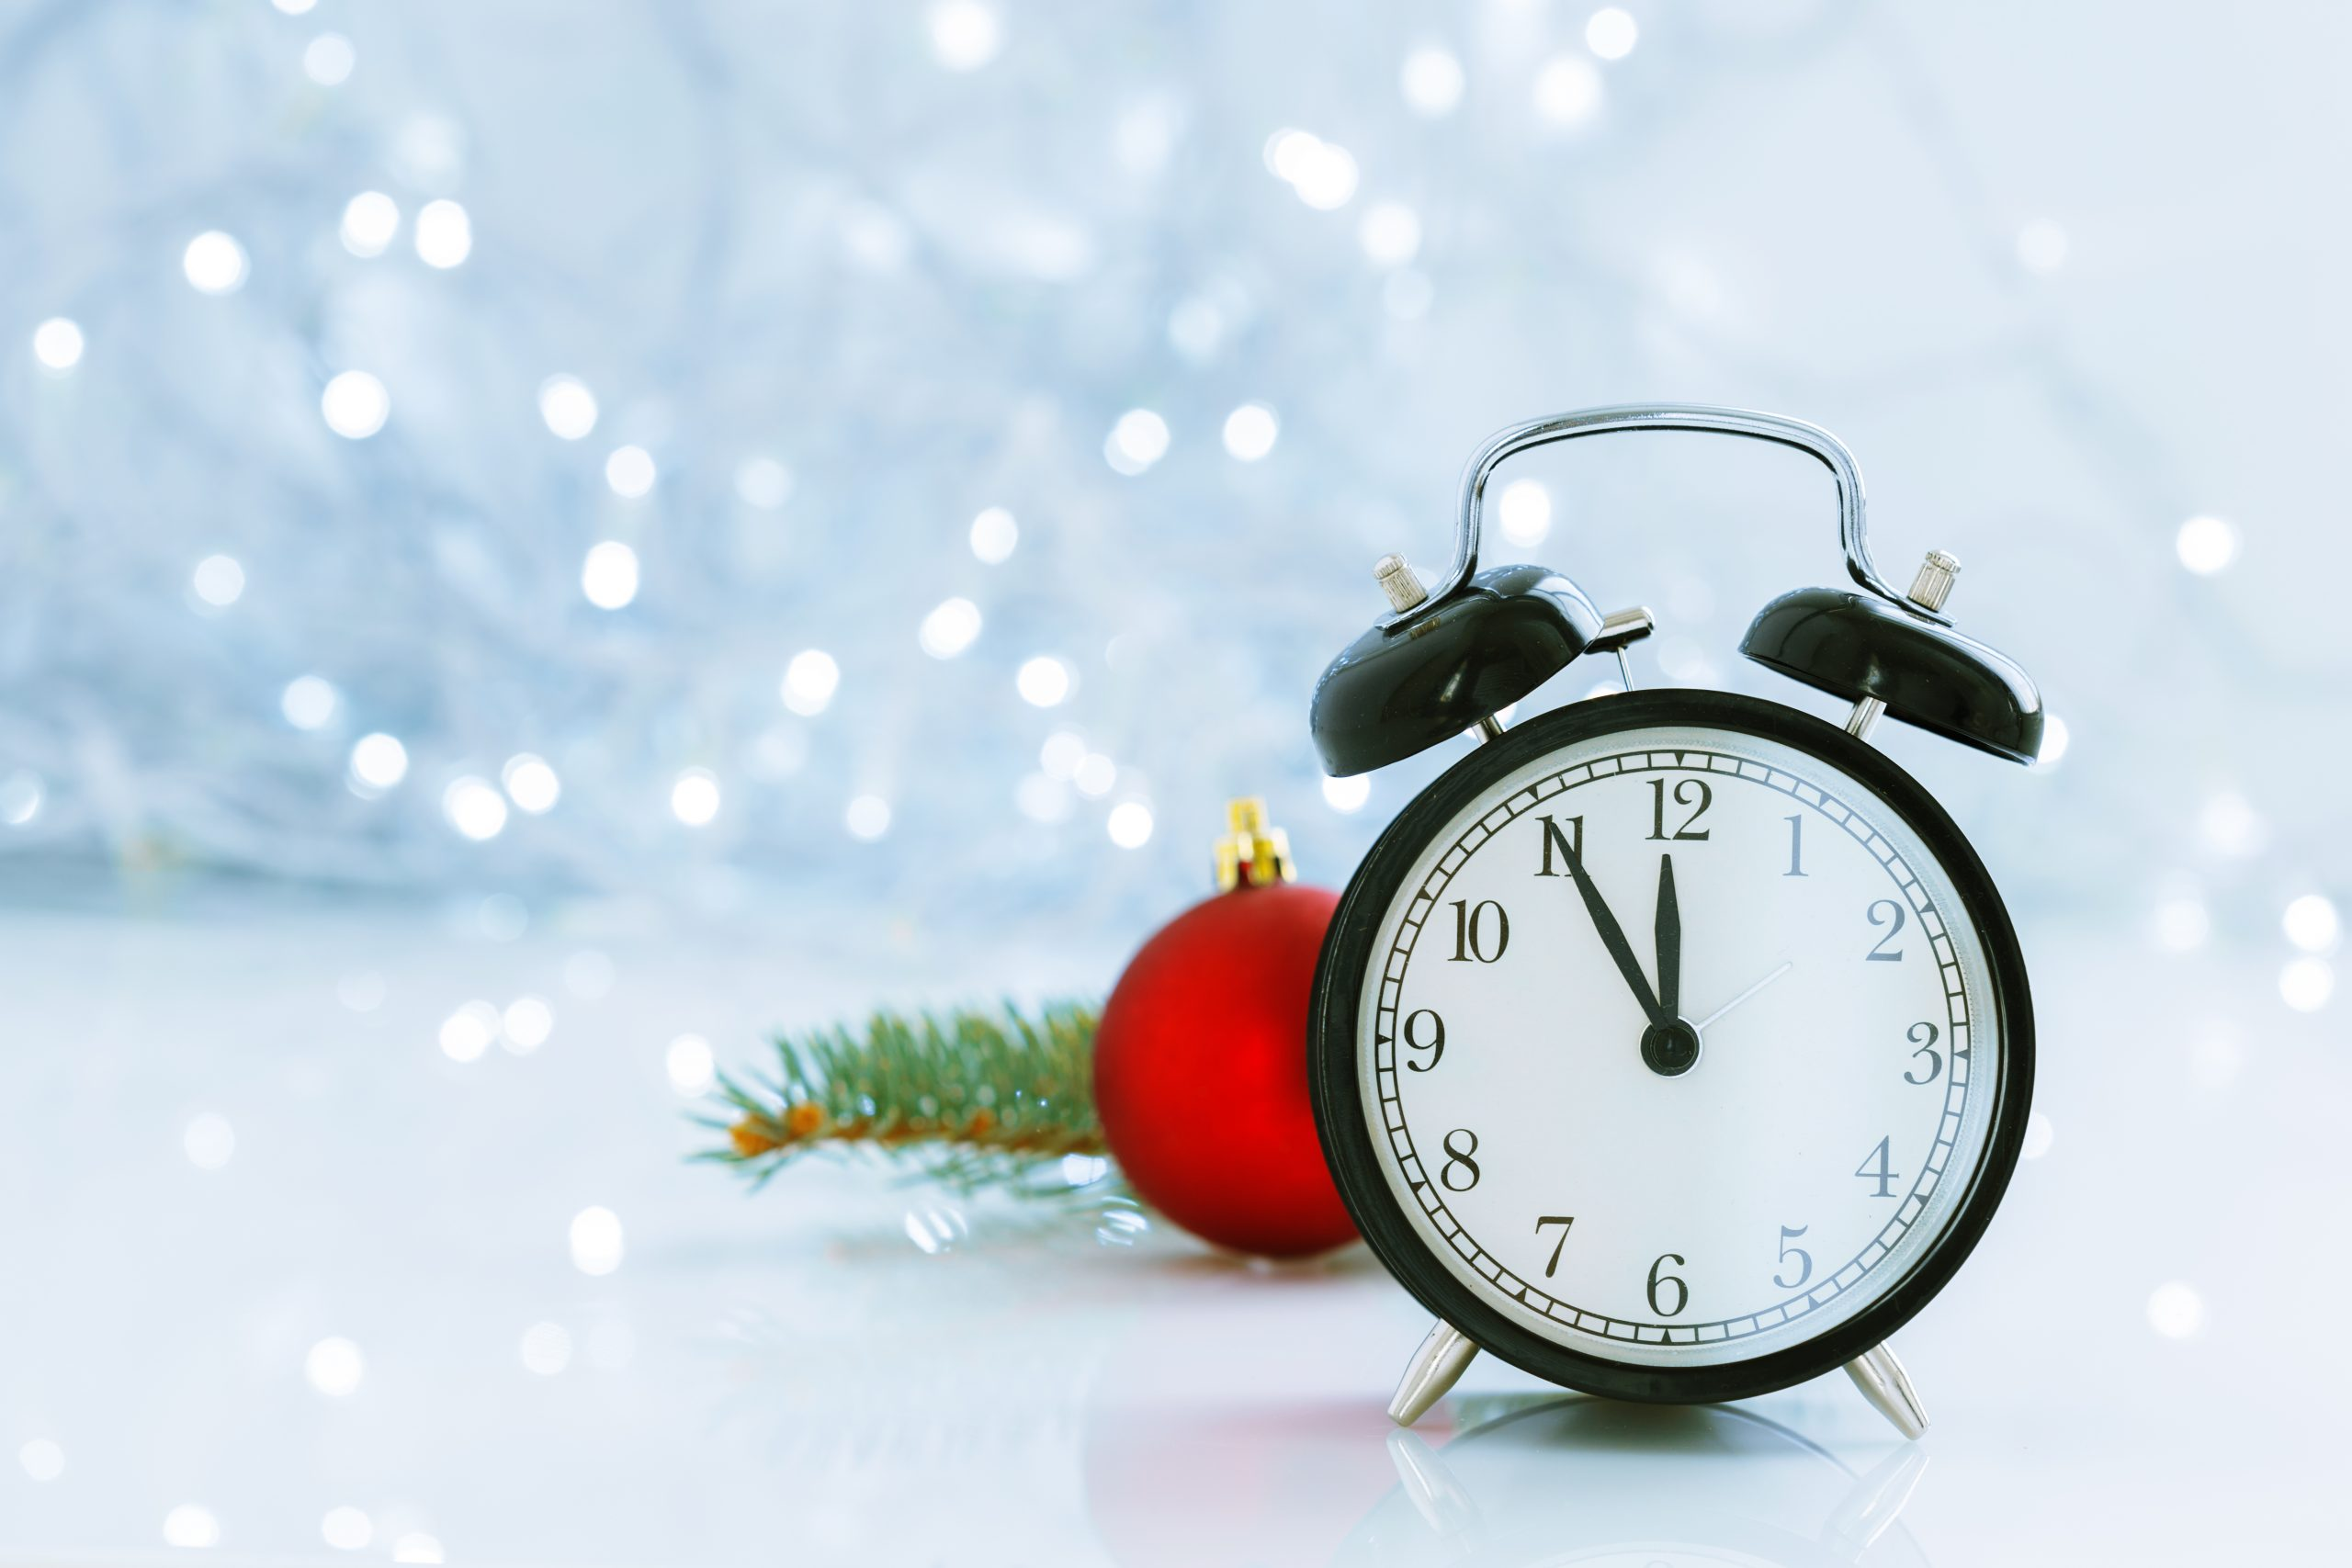 Opening times during the festive period